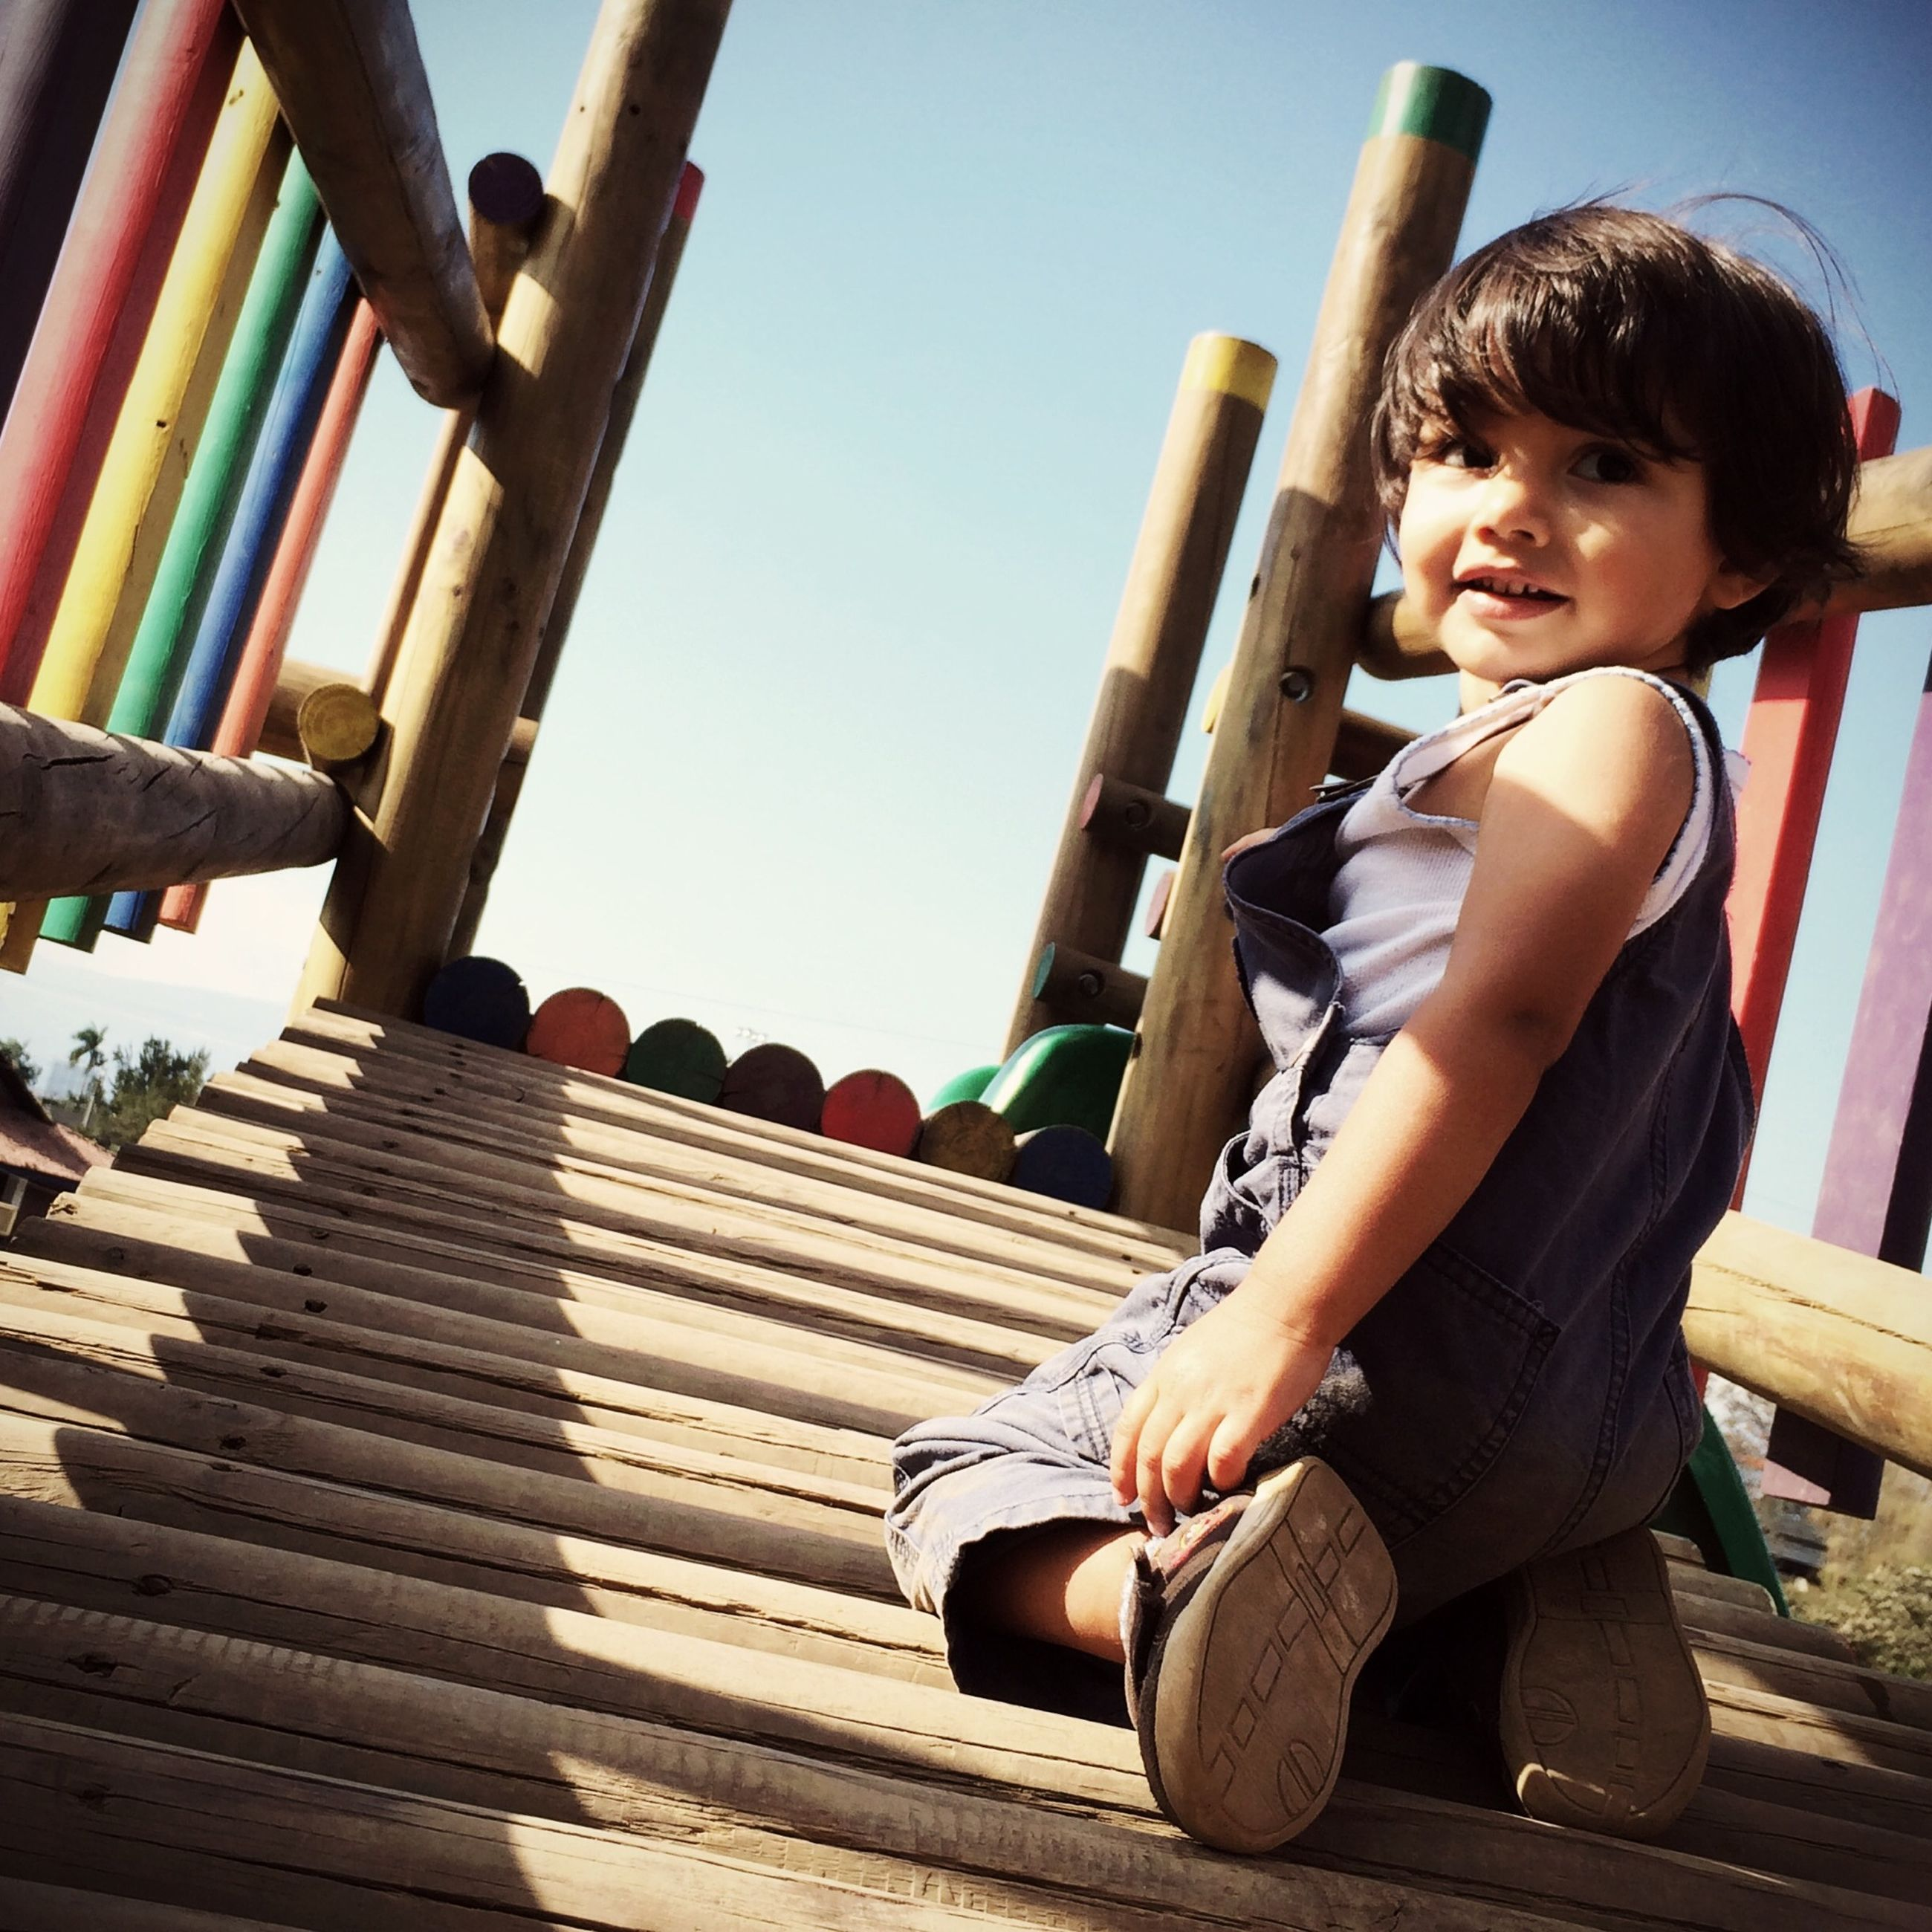 lifestyles, leisure activity, steps, full length, person, casual clothing, railing, childhood, wood - material, young adult, low angle view, sitting, built structure, steps and staircases, staircase, sunlight, day, outdoors